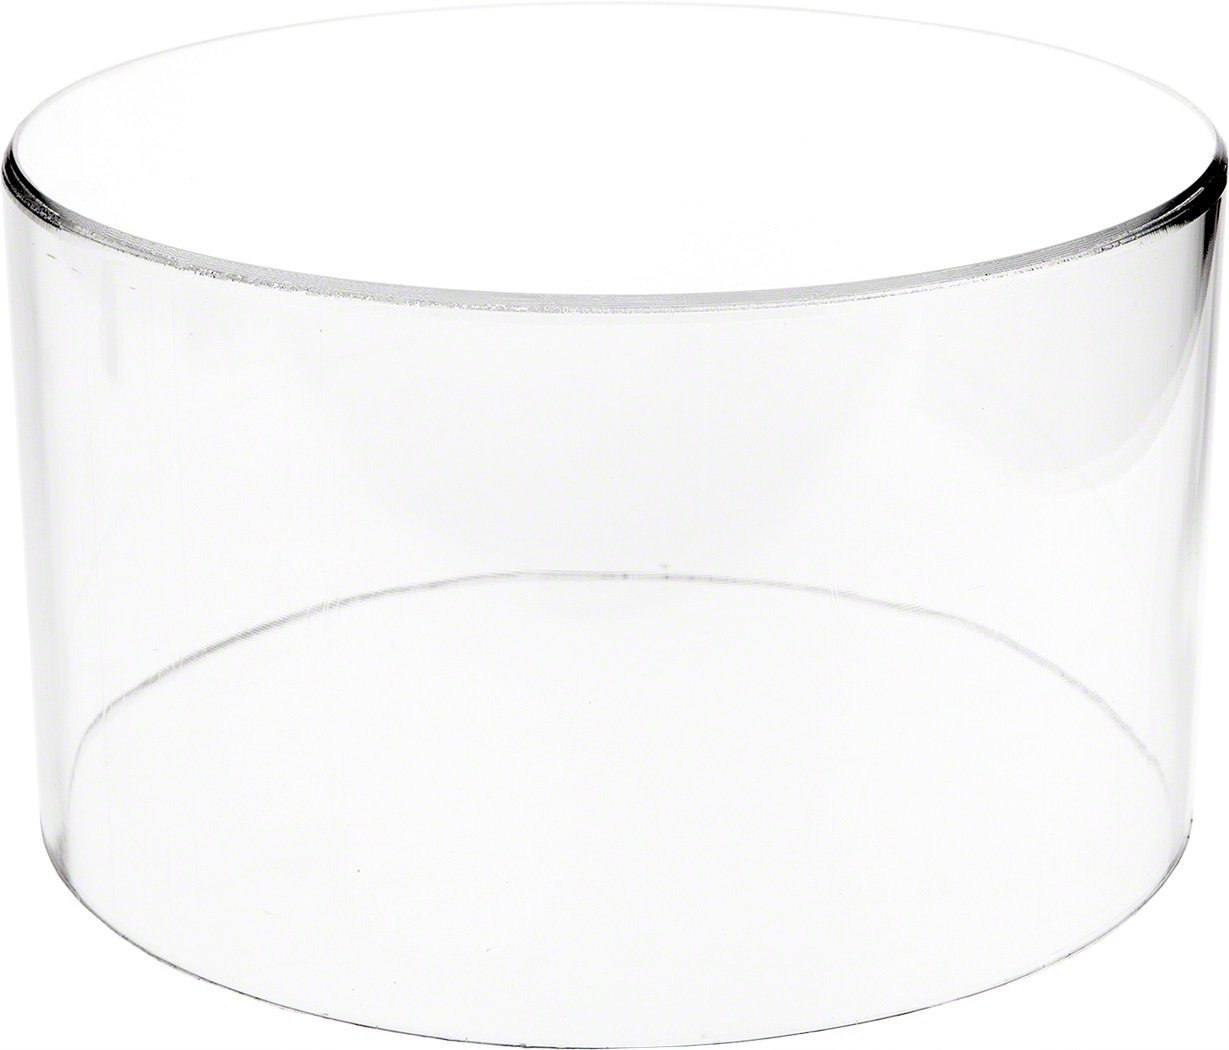 "Plymor Brand Clear Acrylic Round Cylinder Display Riser, 6"" H x 10"" D"